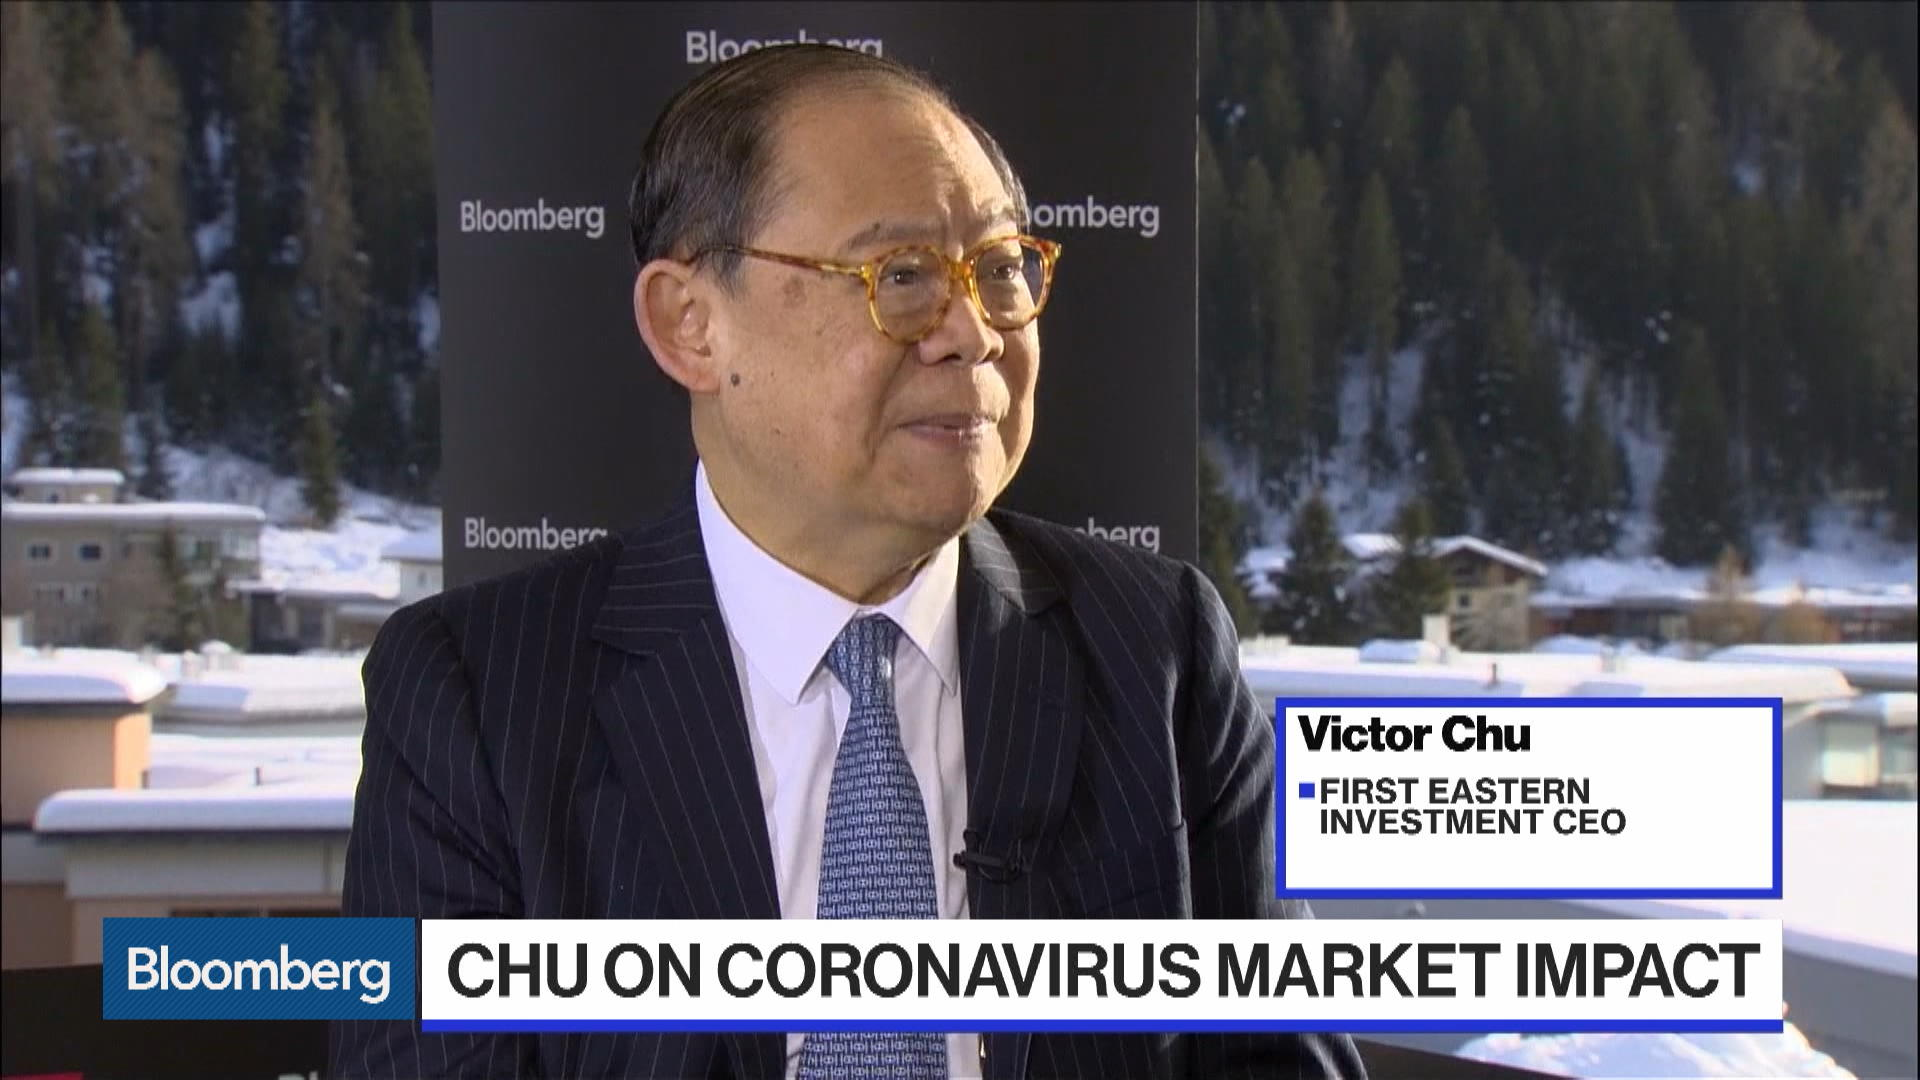 Davos: First Eastern Chairman Victor Chu